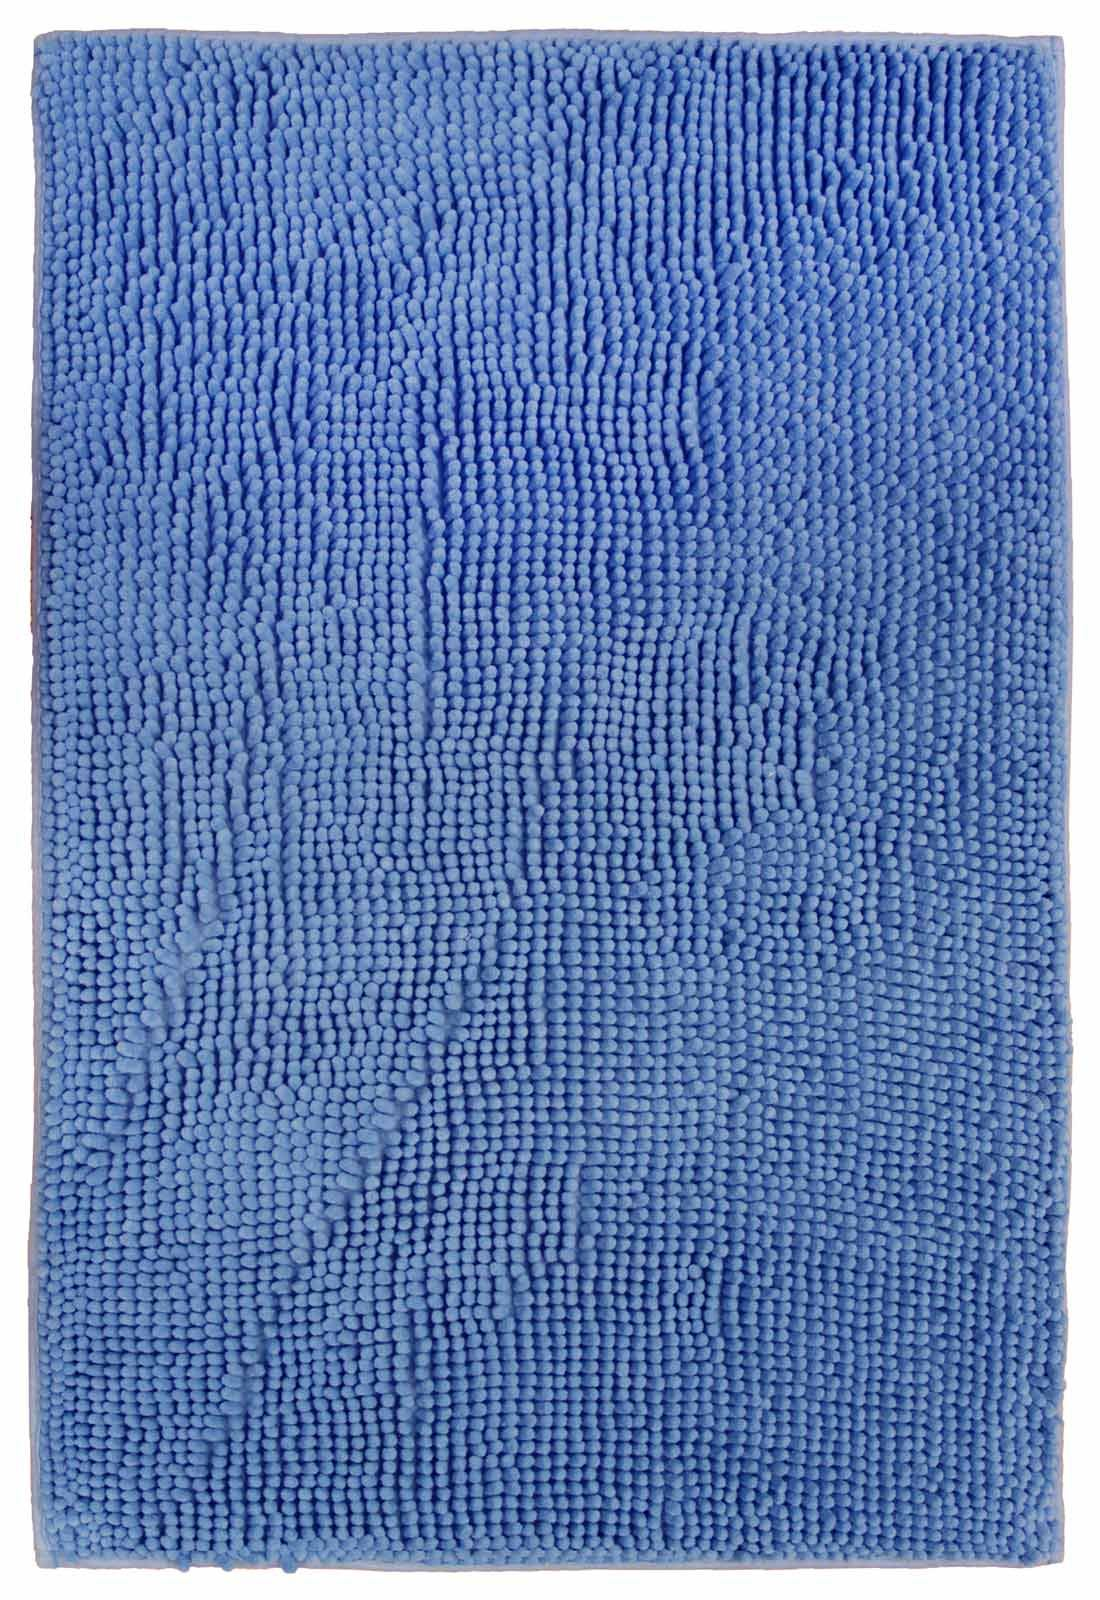 Luxury Bath Towels Amp Rugs Gt Microdry 21Inch X 34Inch Quick Dry Bath Mat